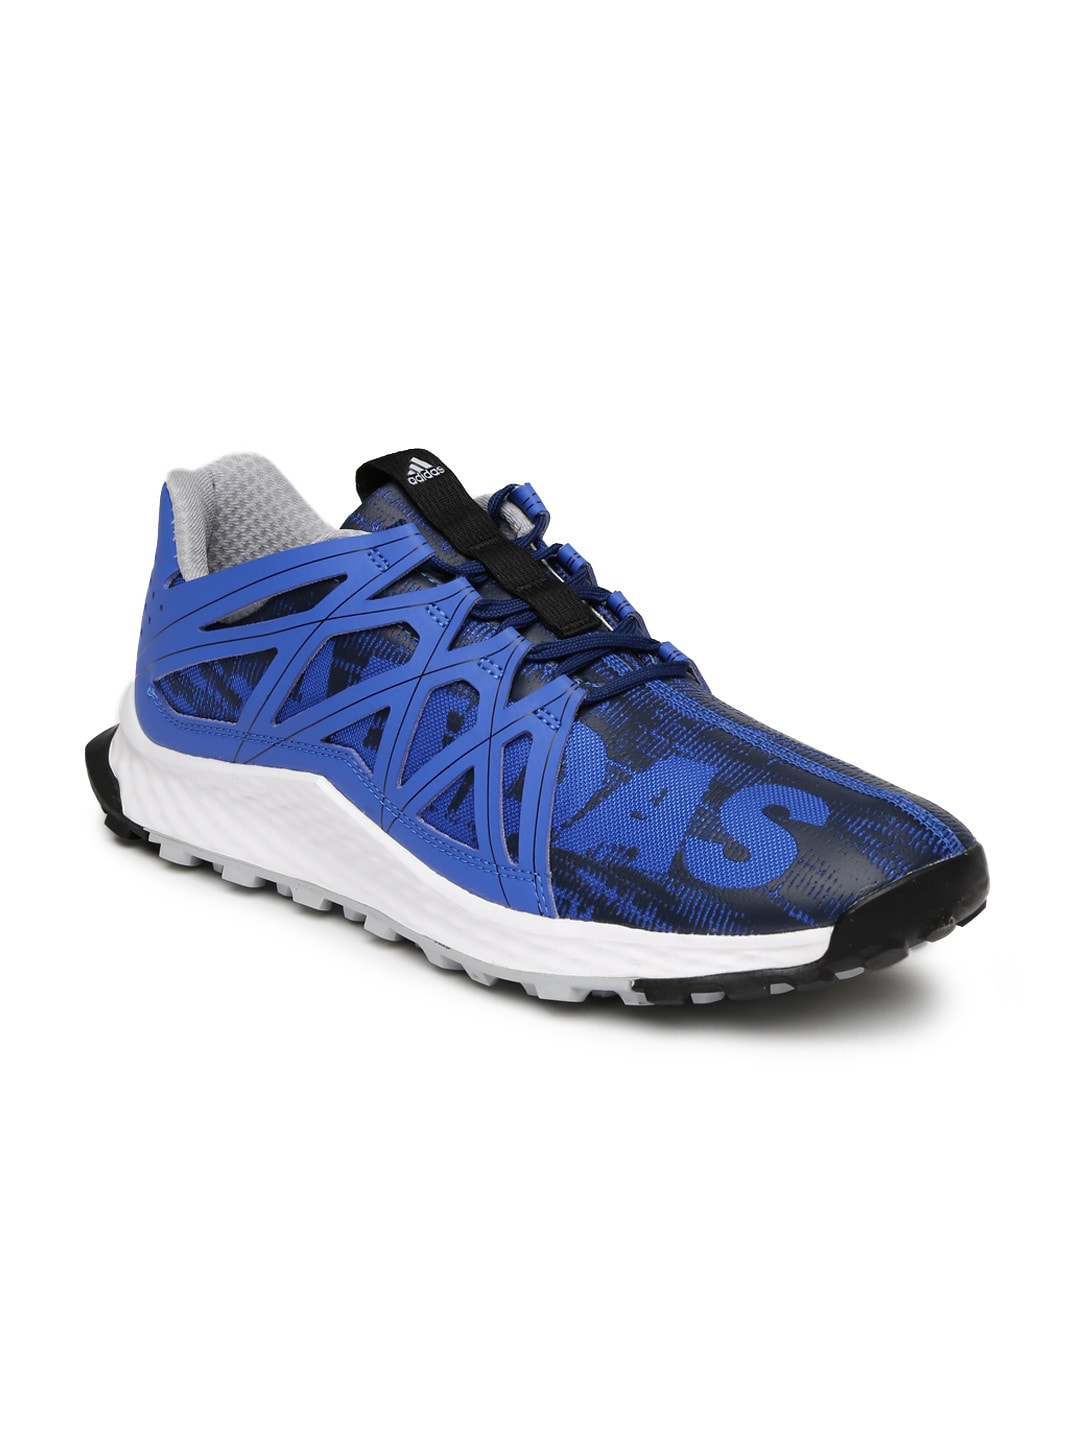 quality design c839f dd6e8 Adidas Sport Shoe - Buy Adidas Sport Shoe online in India